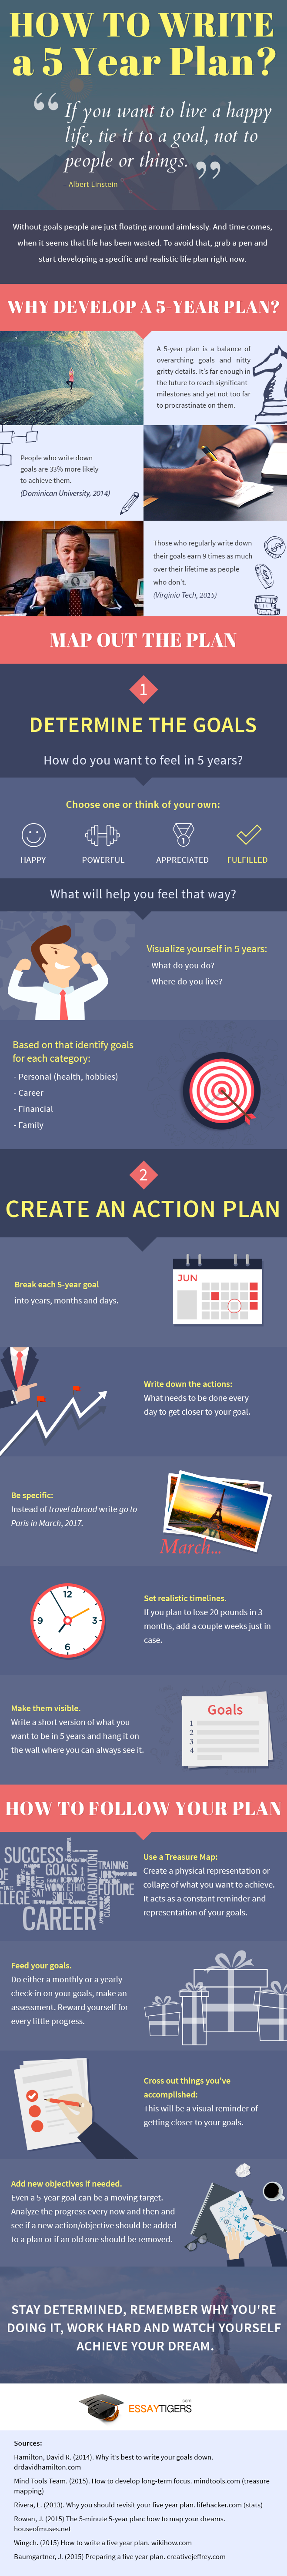 how to write a 5 year plan